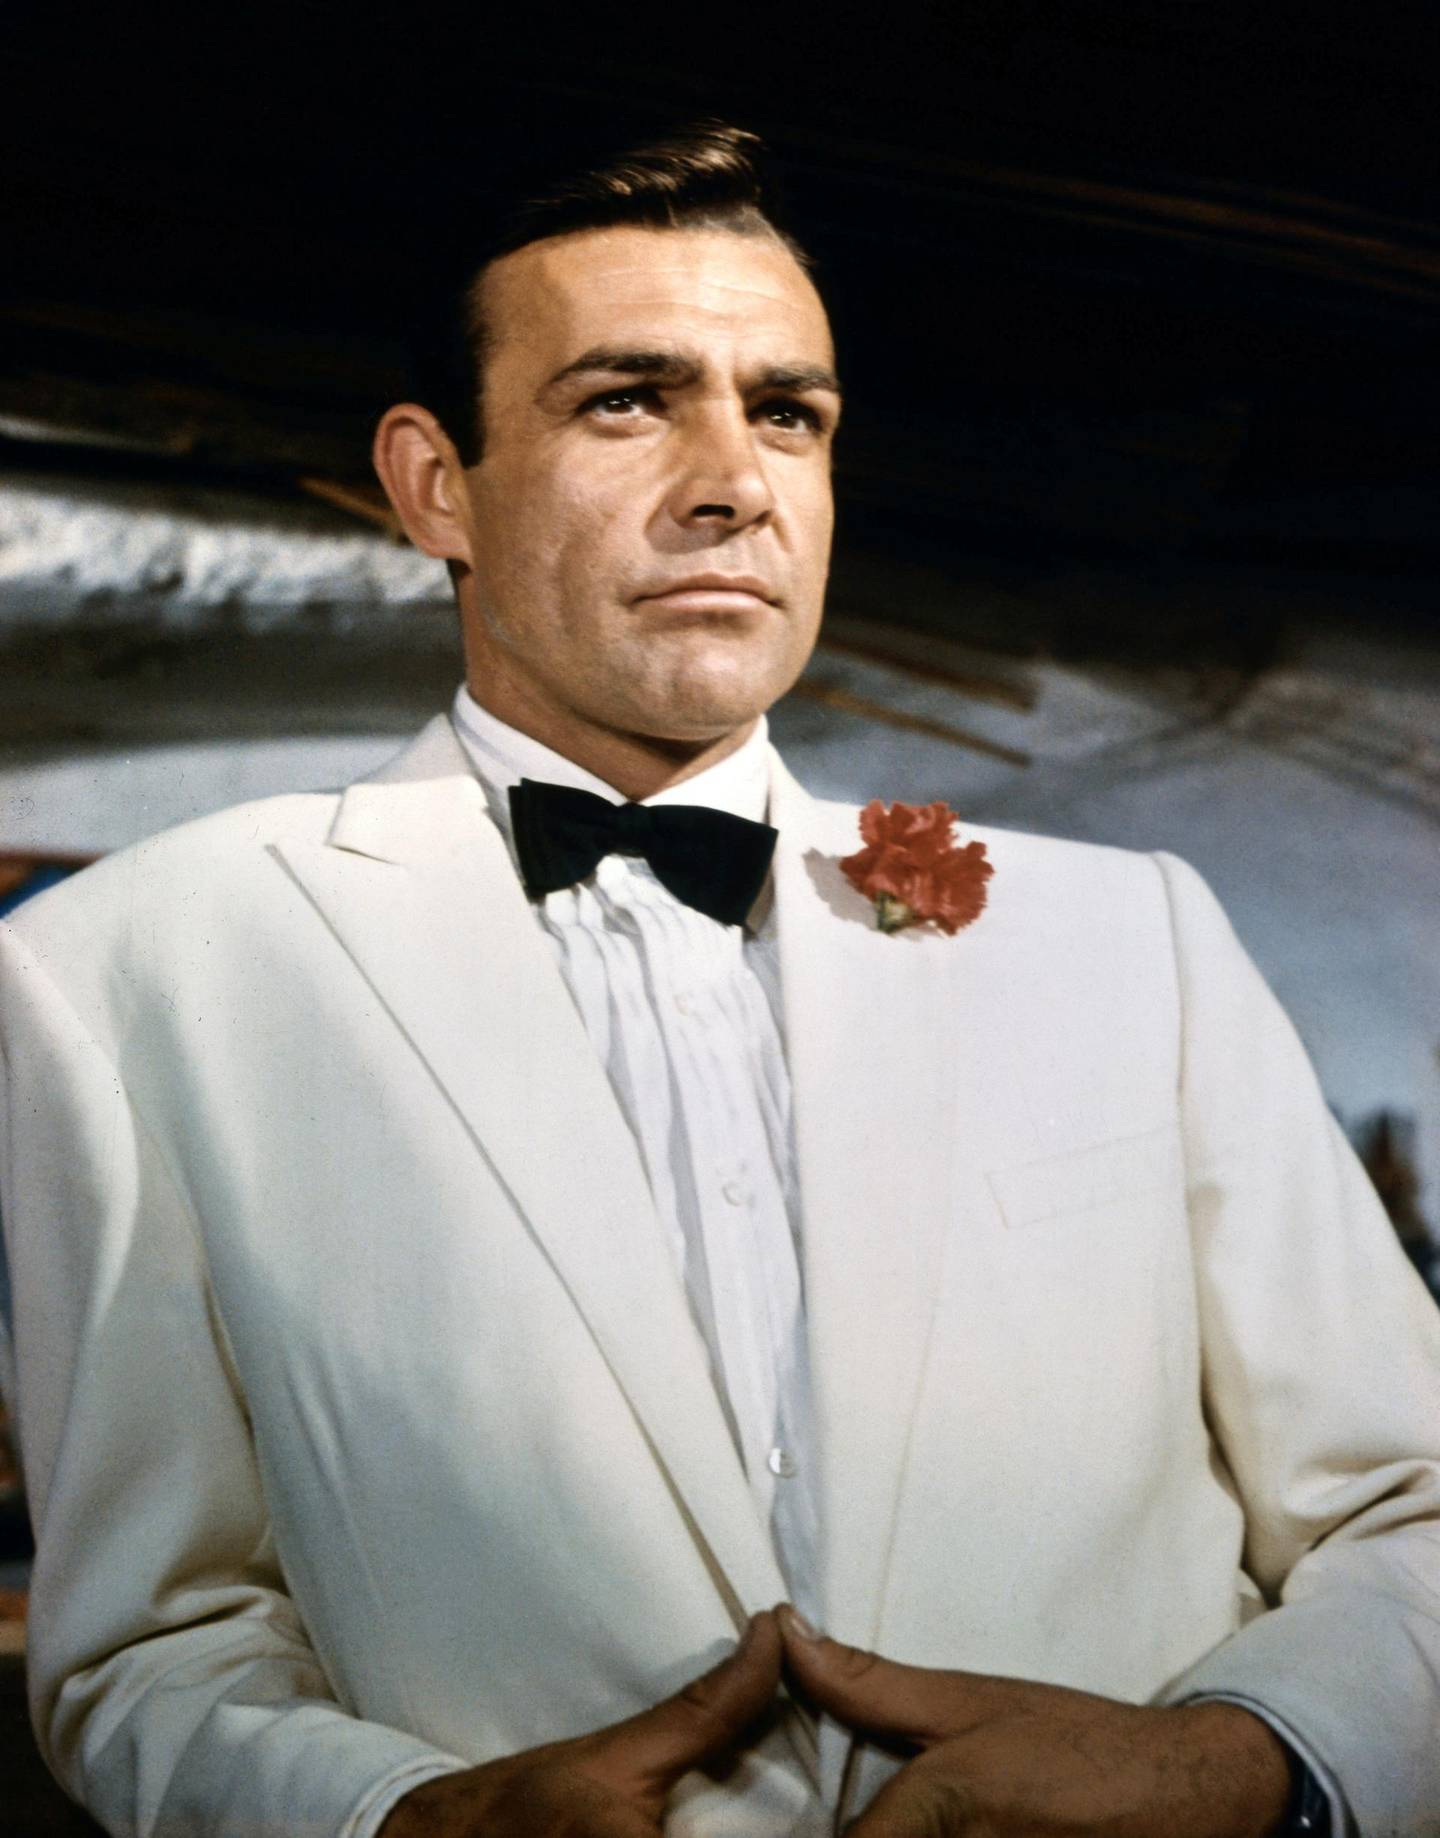 (Original Caption) ca. 1966: Waist-up portrait of Sean Connery, as James Bond, leaning against a bar and looking out across the room. Connery is wearing a white tuxedo and bow tie with a red carnation in his lapel. CONNERY; SEAN BOND; JAMES. 99/99/1966 35 U CT4X5